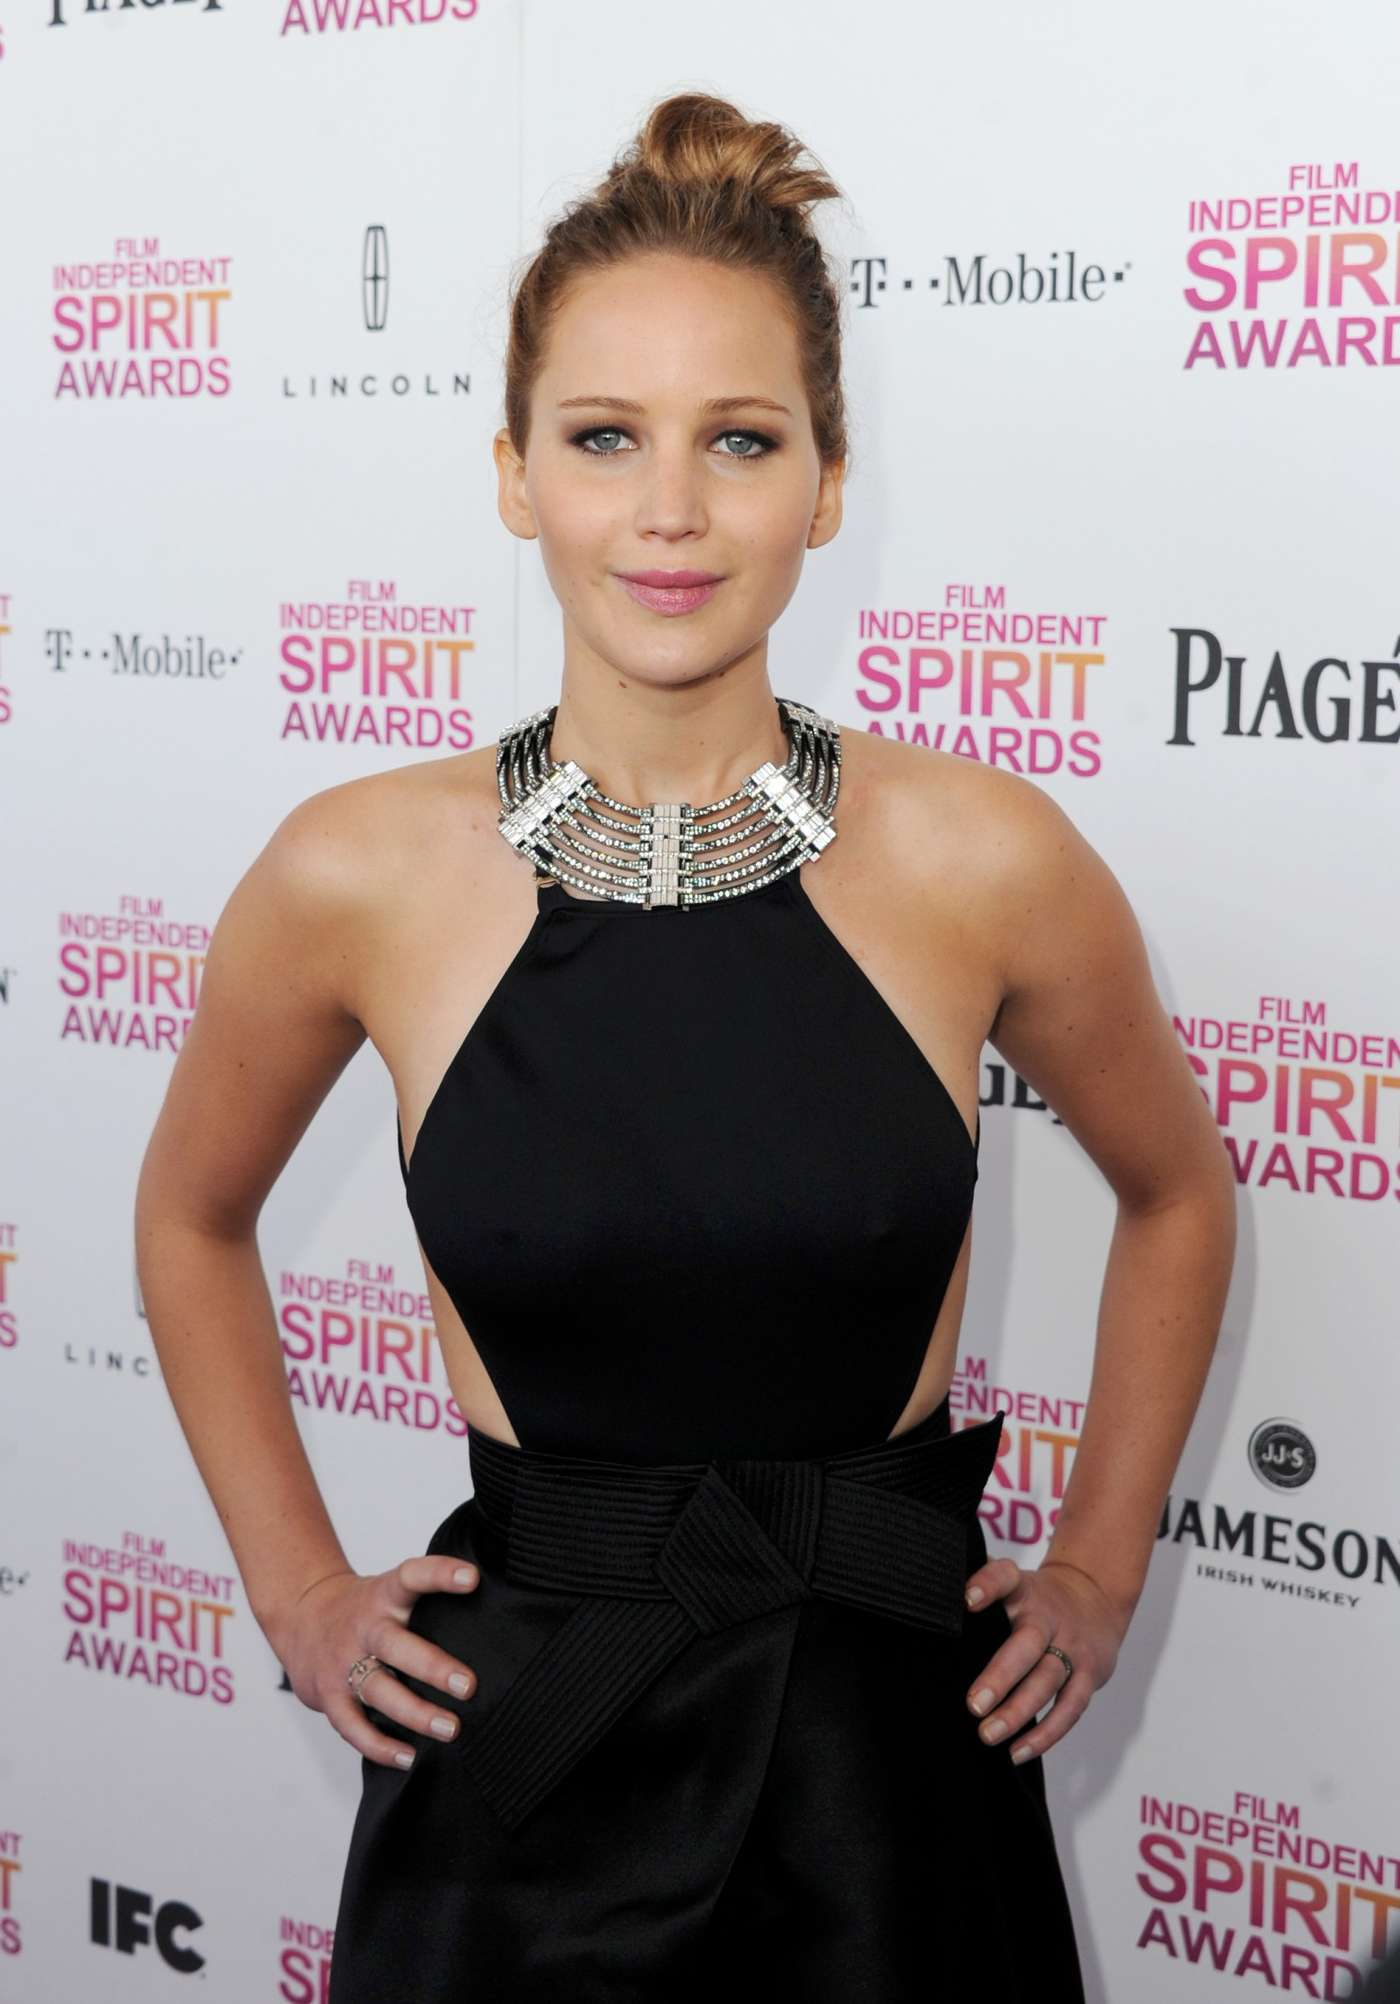 Not jennifer lawrence spirit awards think, that